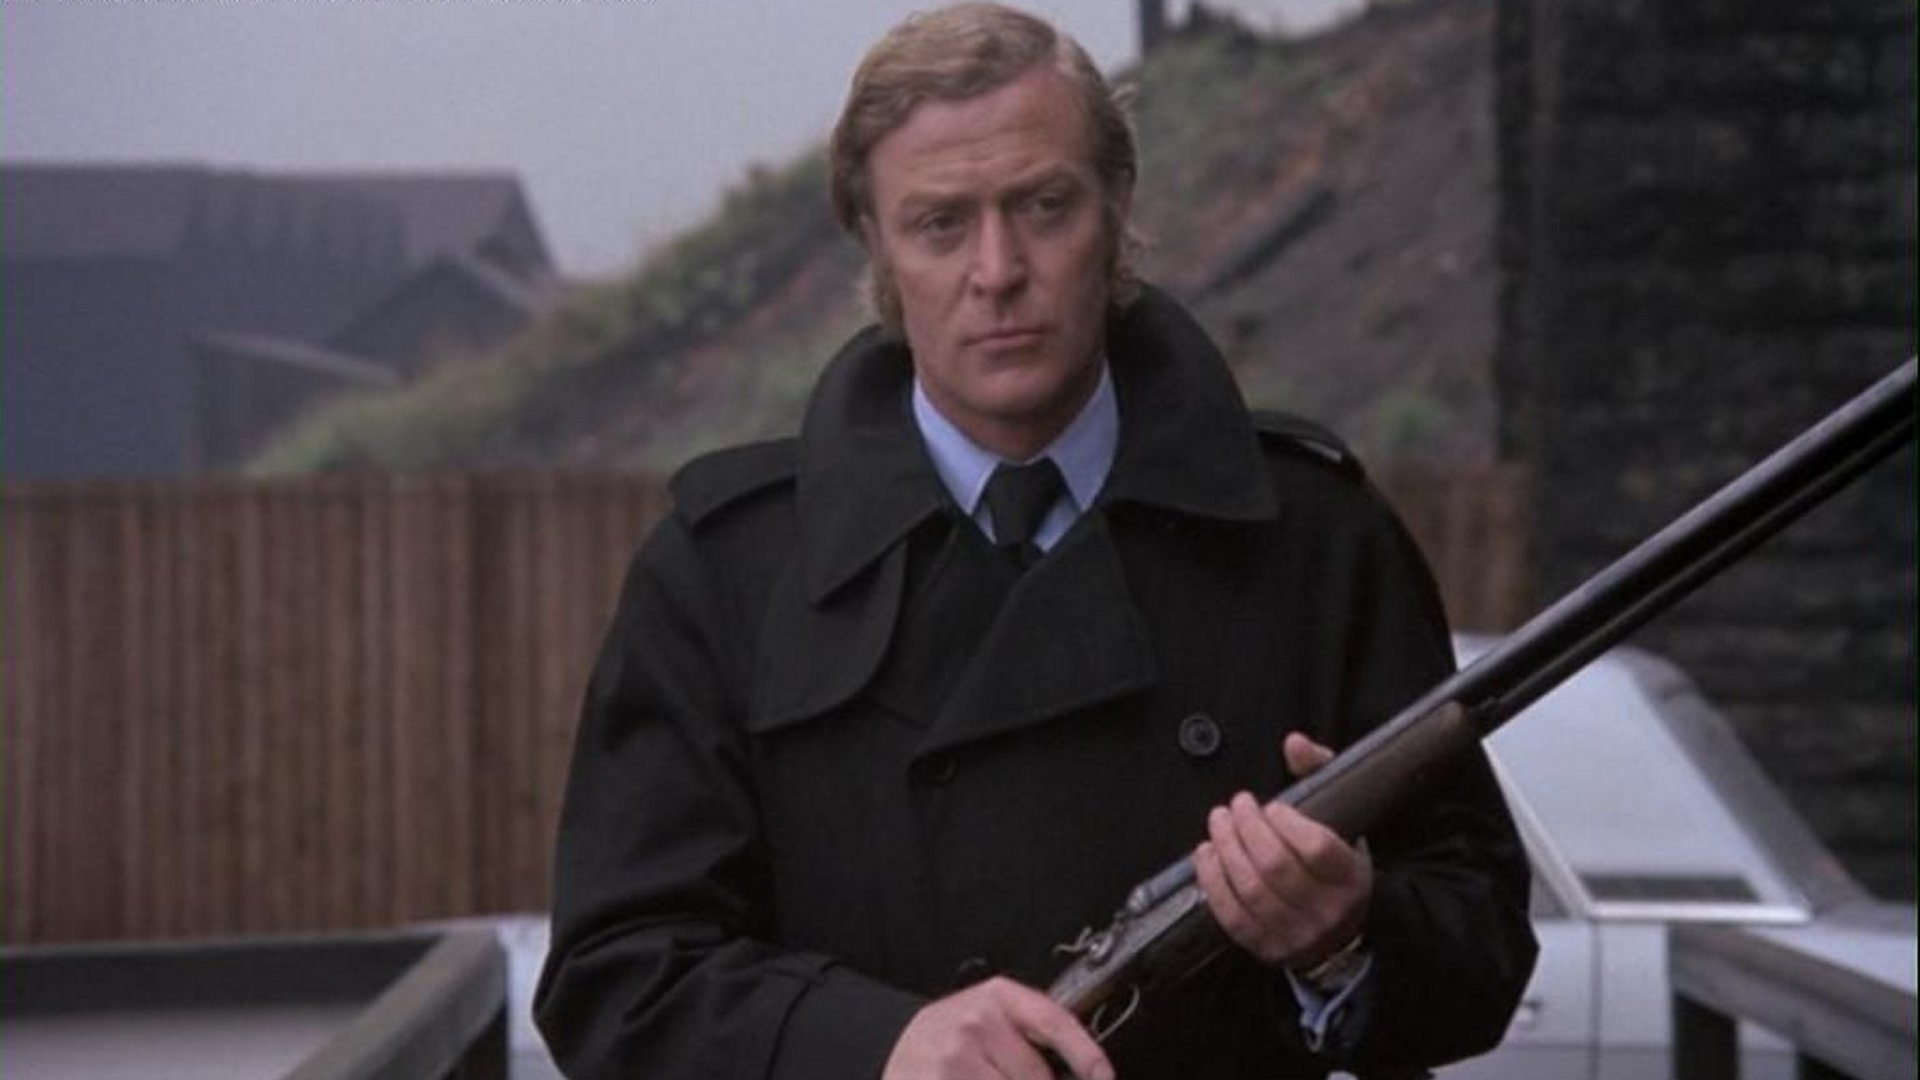 Get Carter (1971) and Get Carter (2000) – Mike's Take On the Movies ……….  Rediscovering Cinema's Past